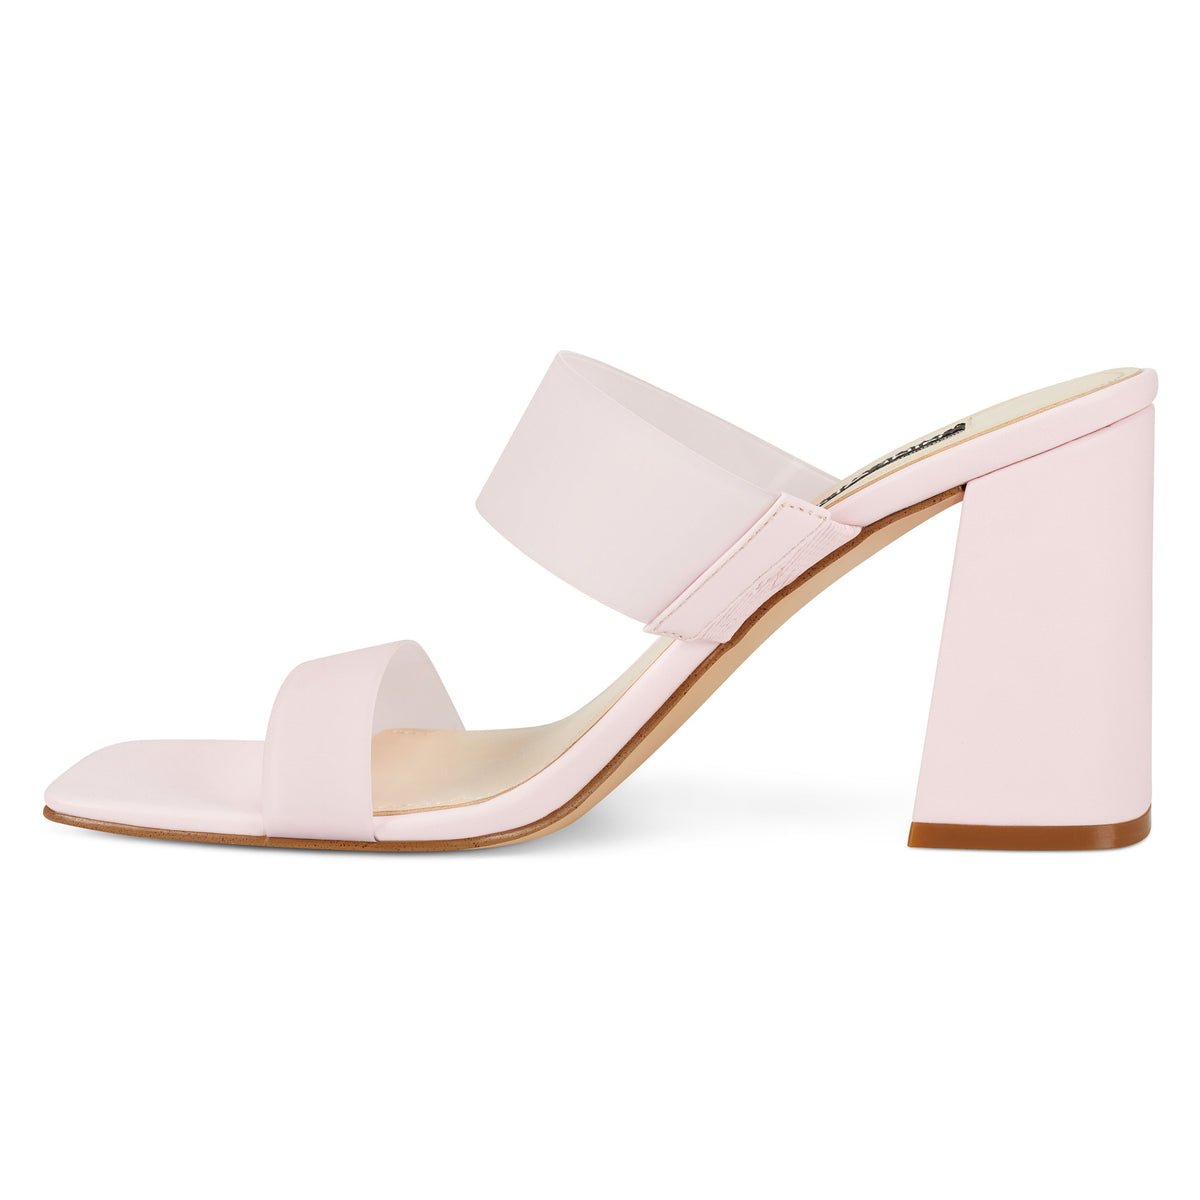 gya-block-heel-slide-sandals-in-light-pink-leather